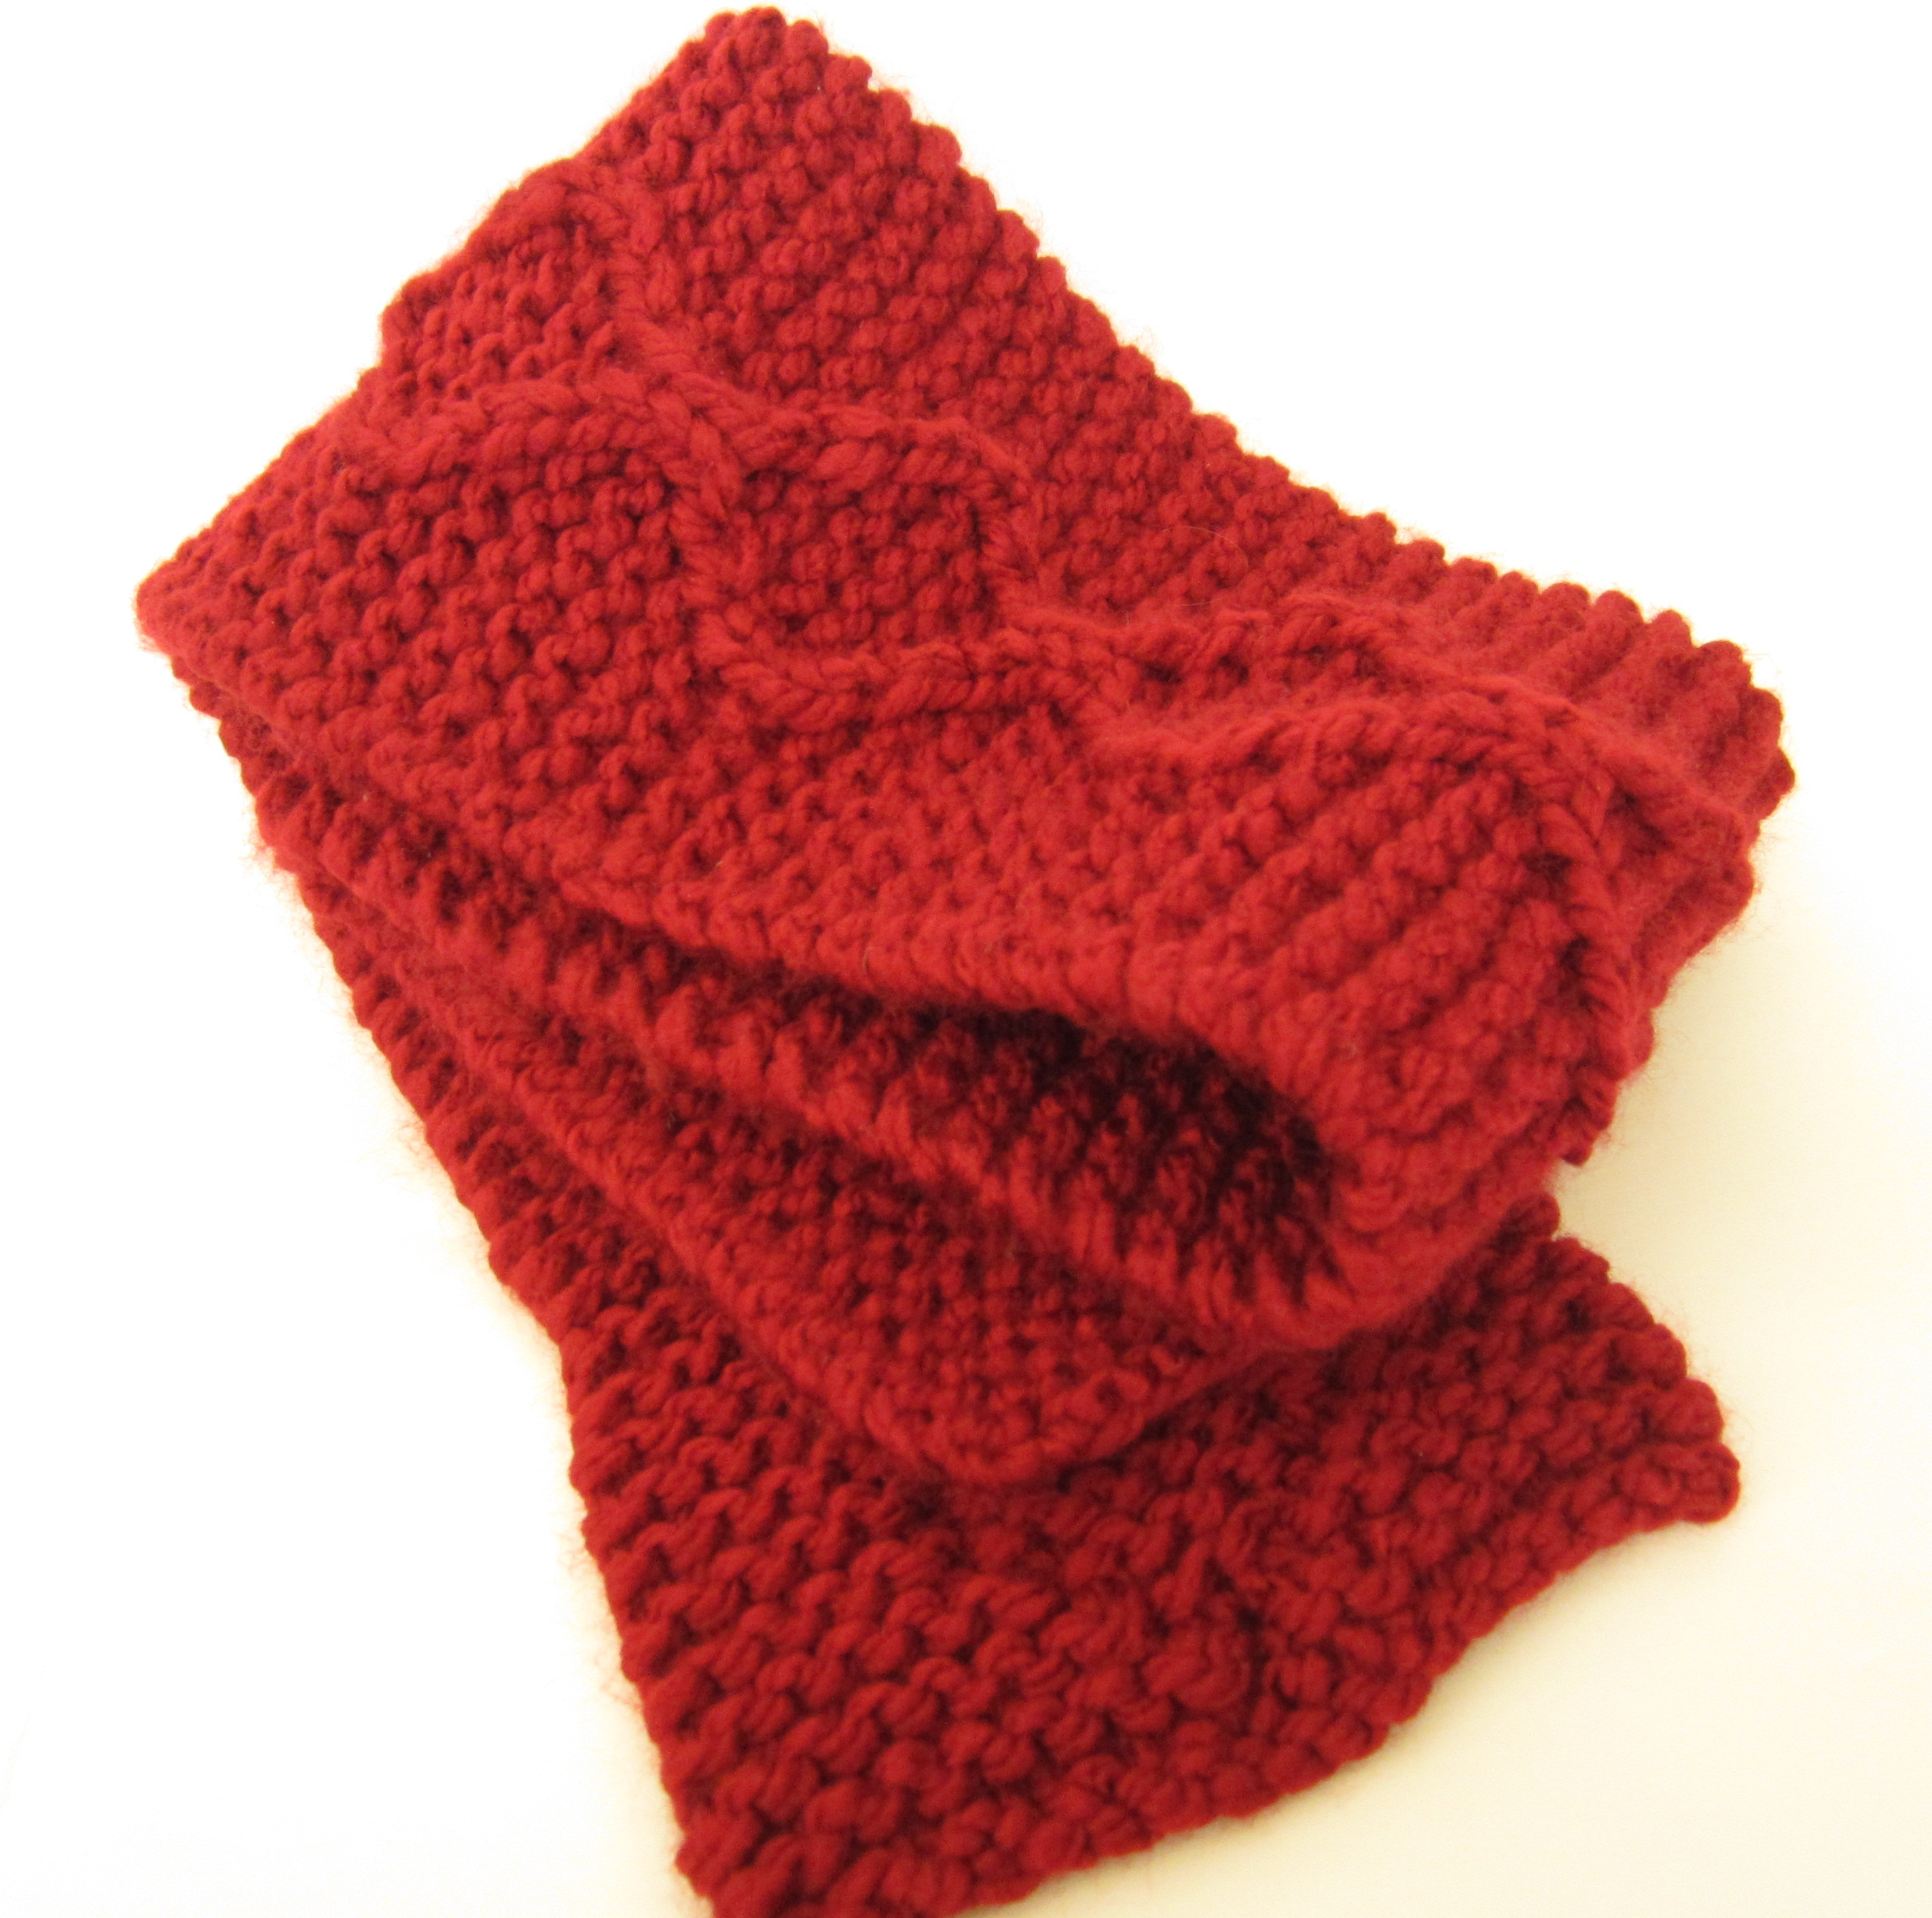 Free Knitting Pattern Images : Quick Free Knitting Patterns